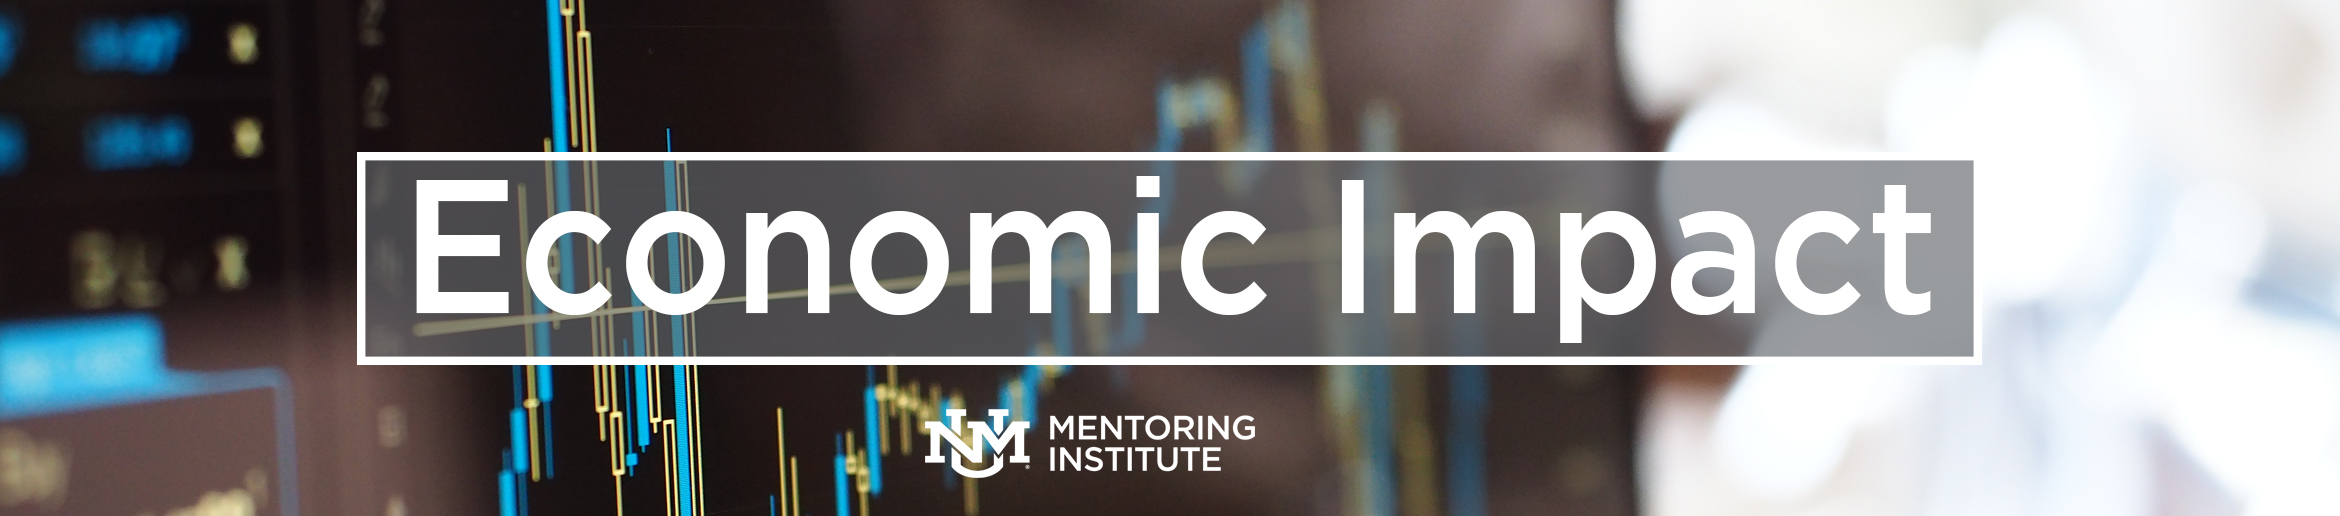 Mentoring Institute Conference 2017